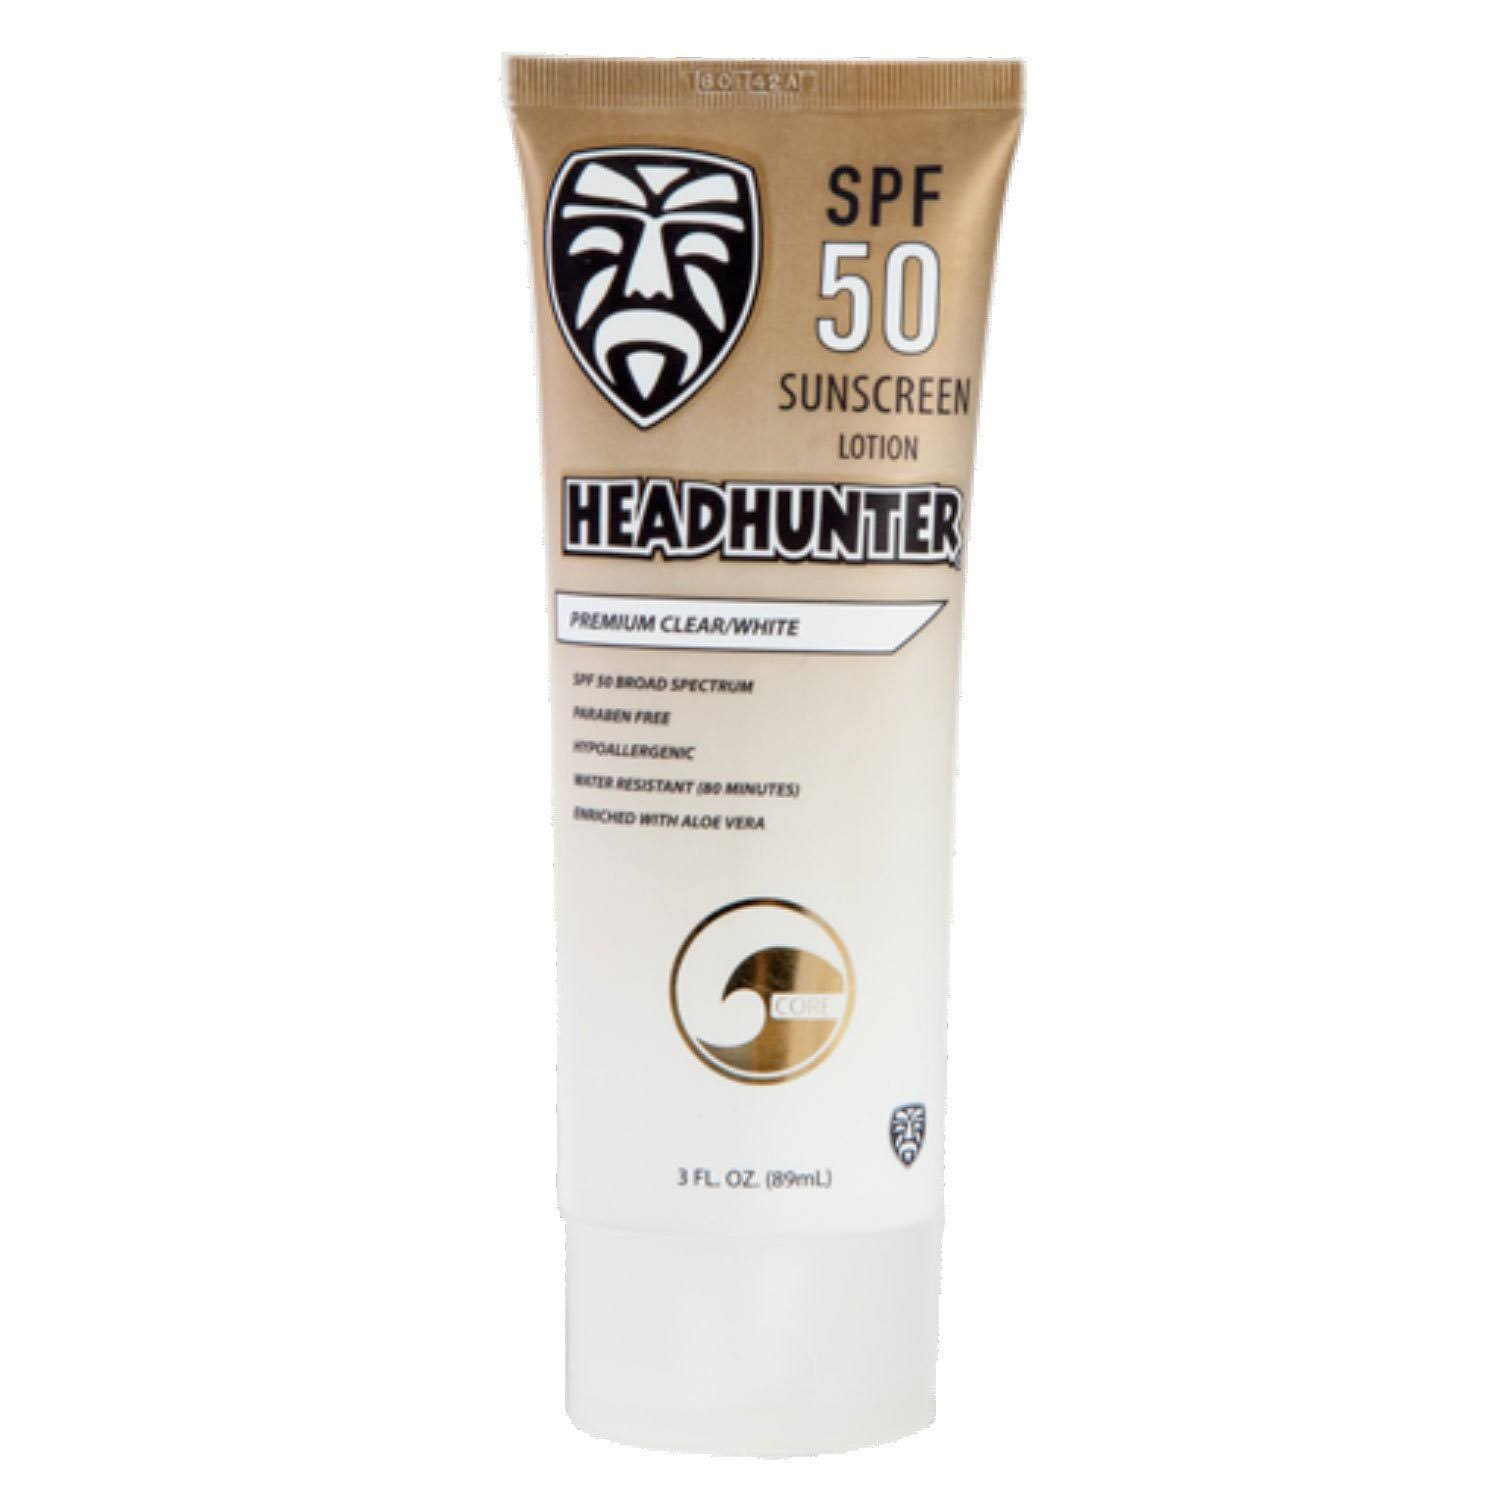 Headhunter SPF 50 Sunscreen Clear 3oz